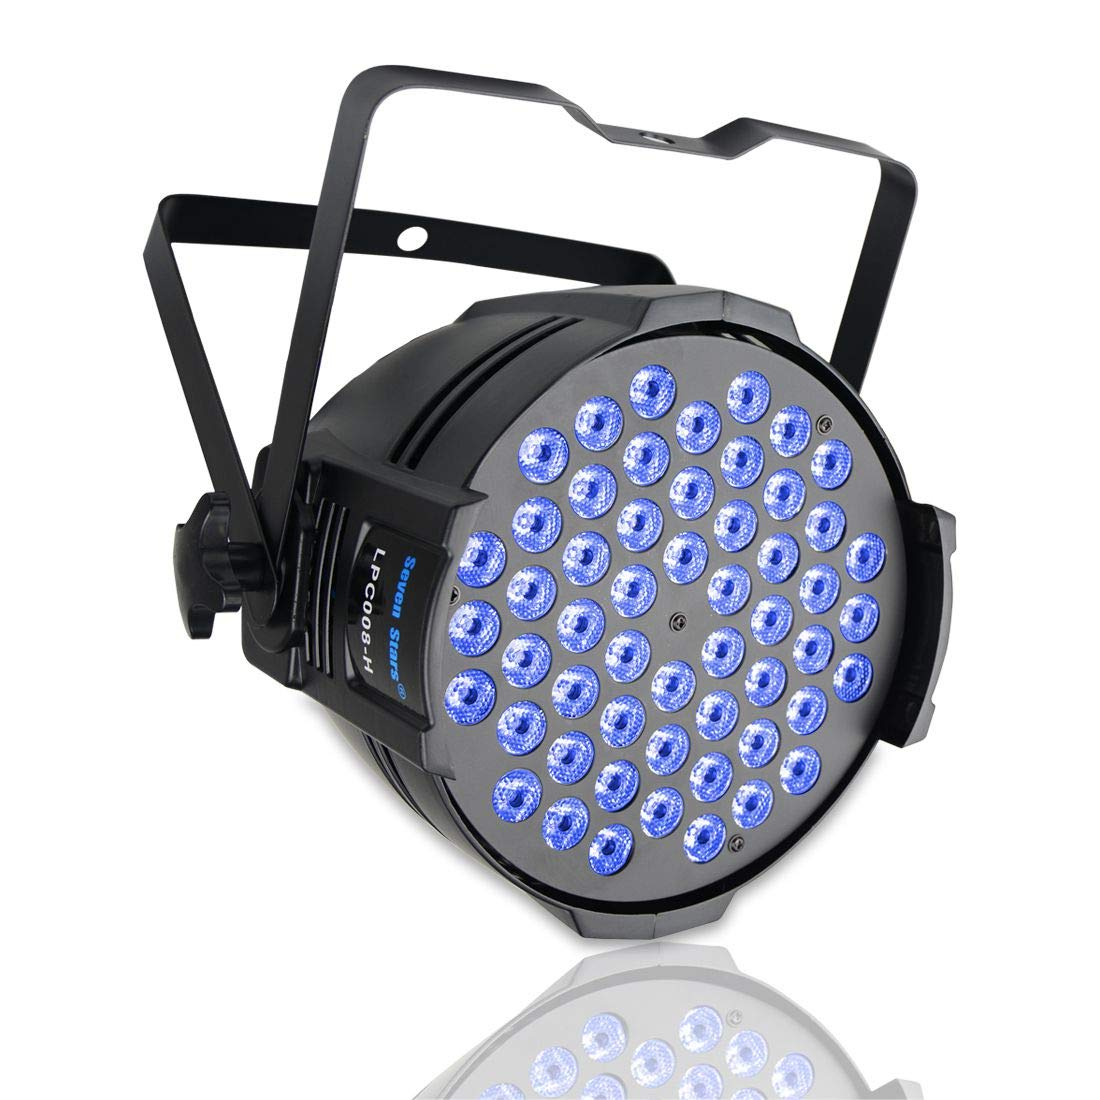 SevenStars DJ PAR Lights led wash light 54×1.5W RGB 3 in 1 LED Par Lights with dmx 512 Music-Controlled/Master-Slave